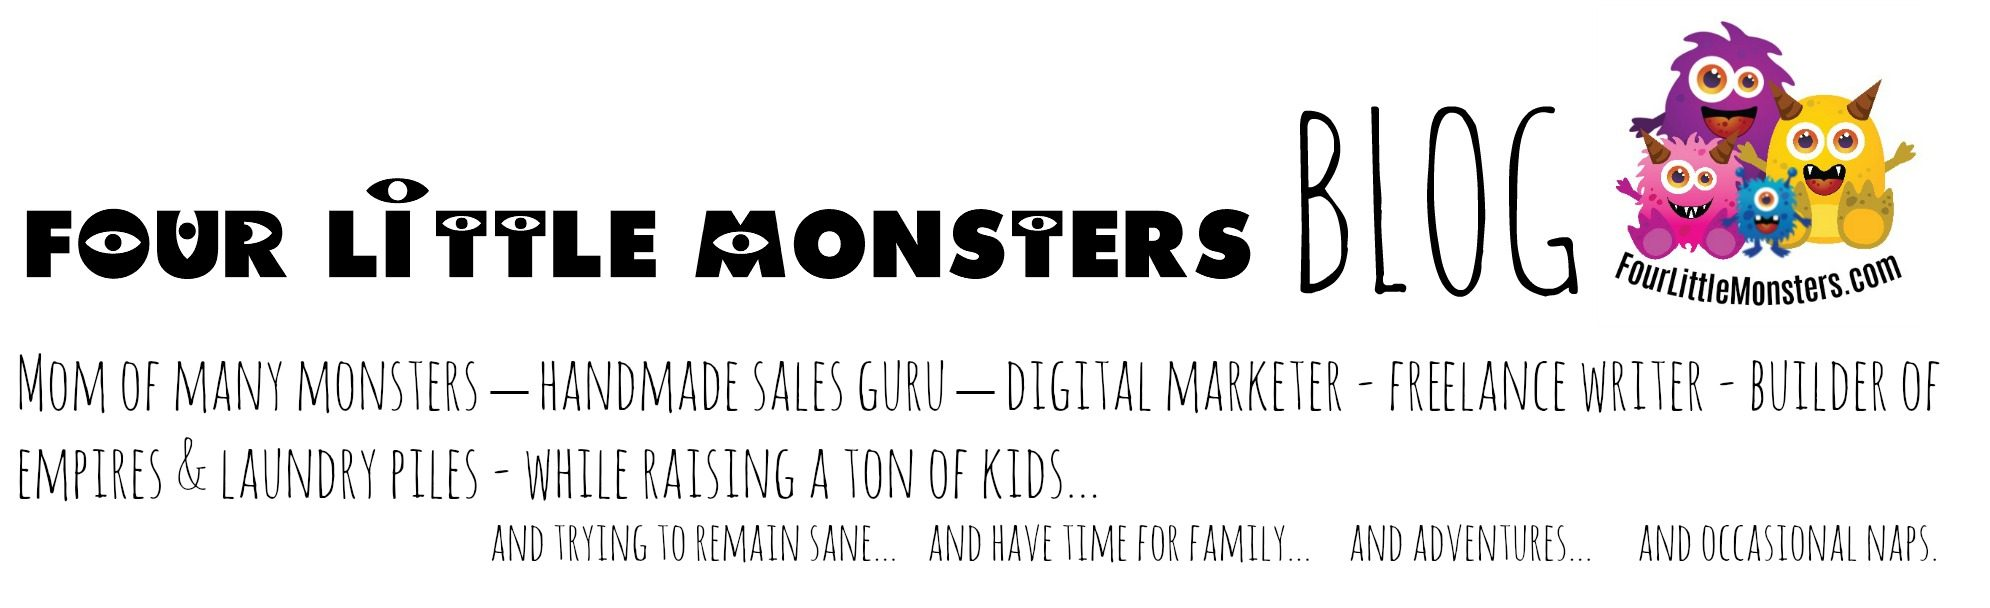 Four Little Monsters Blog: